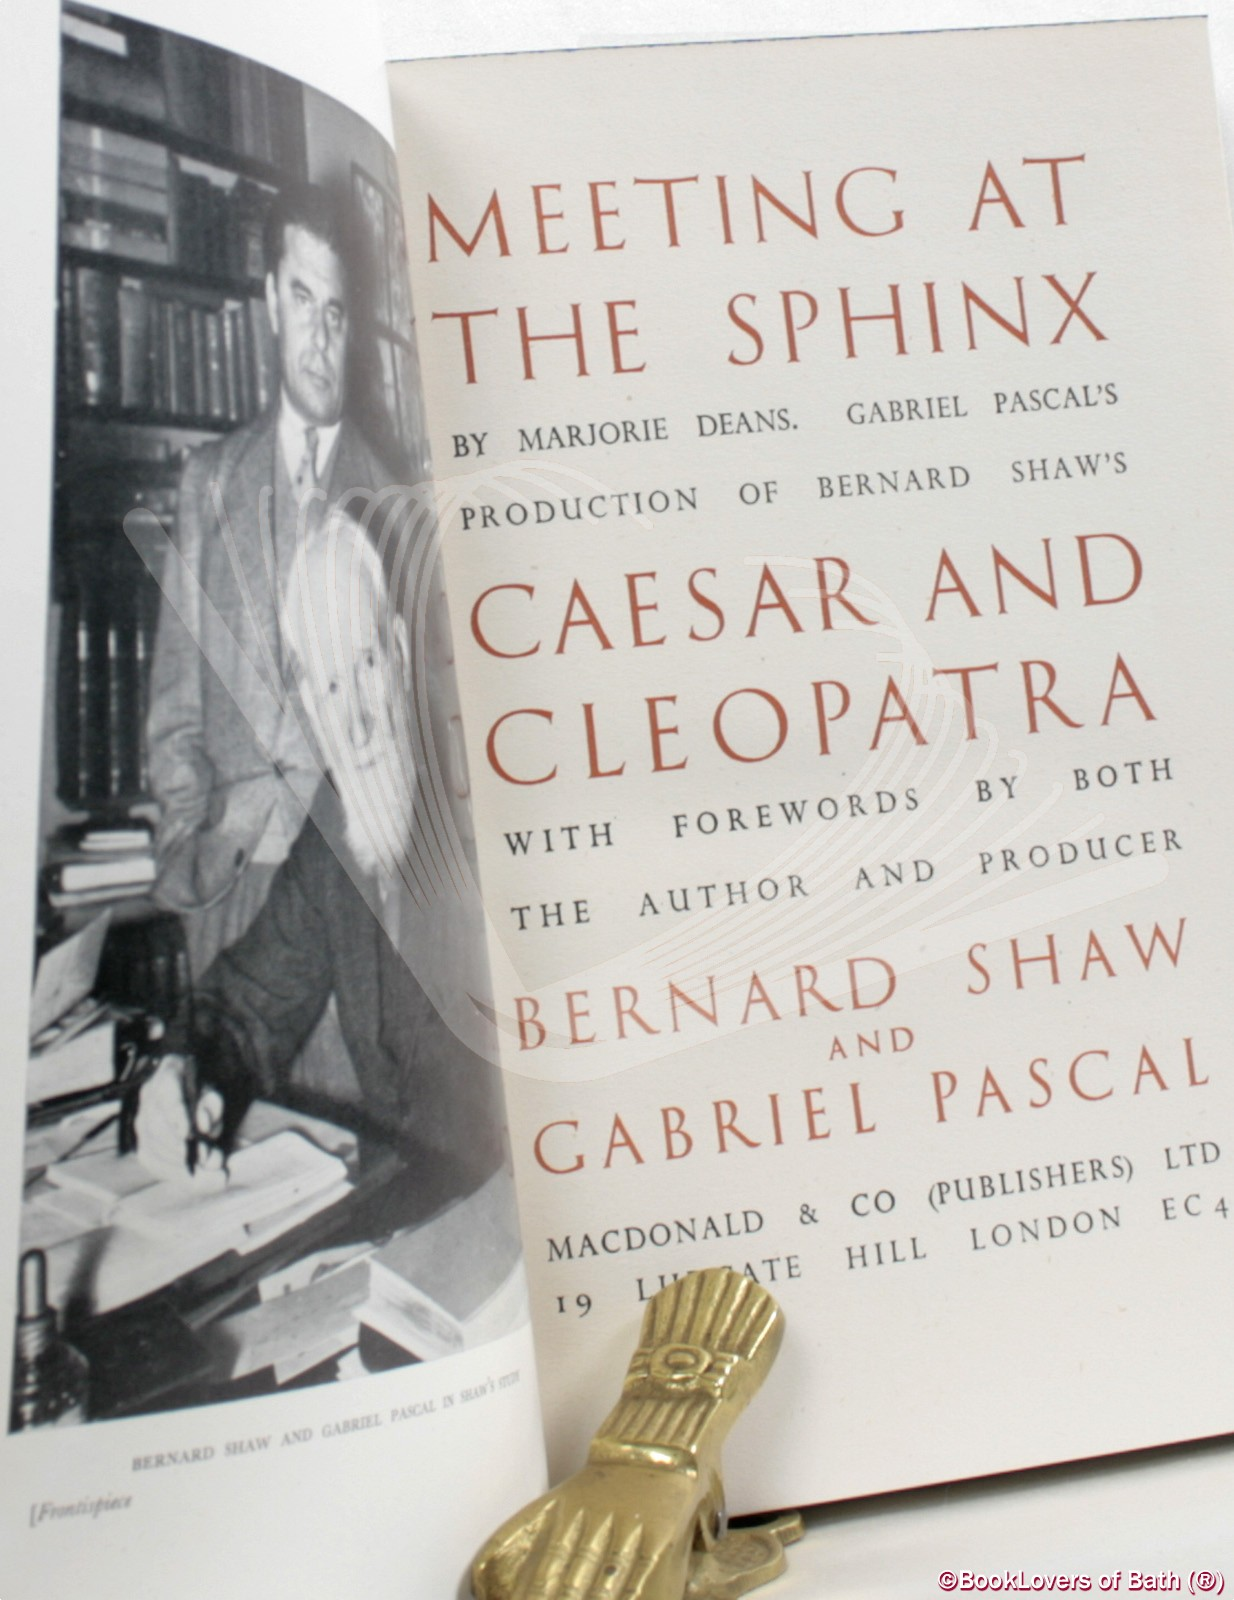 Meeting at the Sphinx: Gabriel Pascal's Production of Bernard Sha